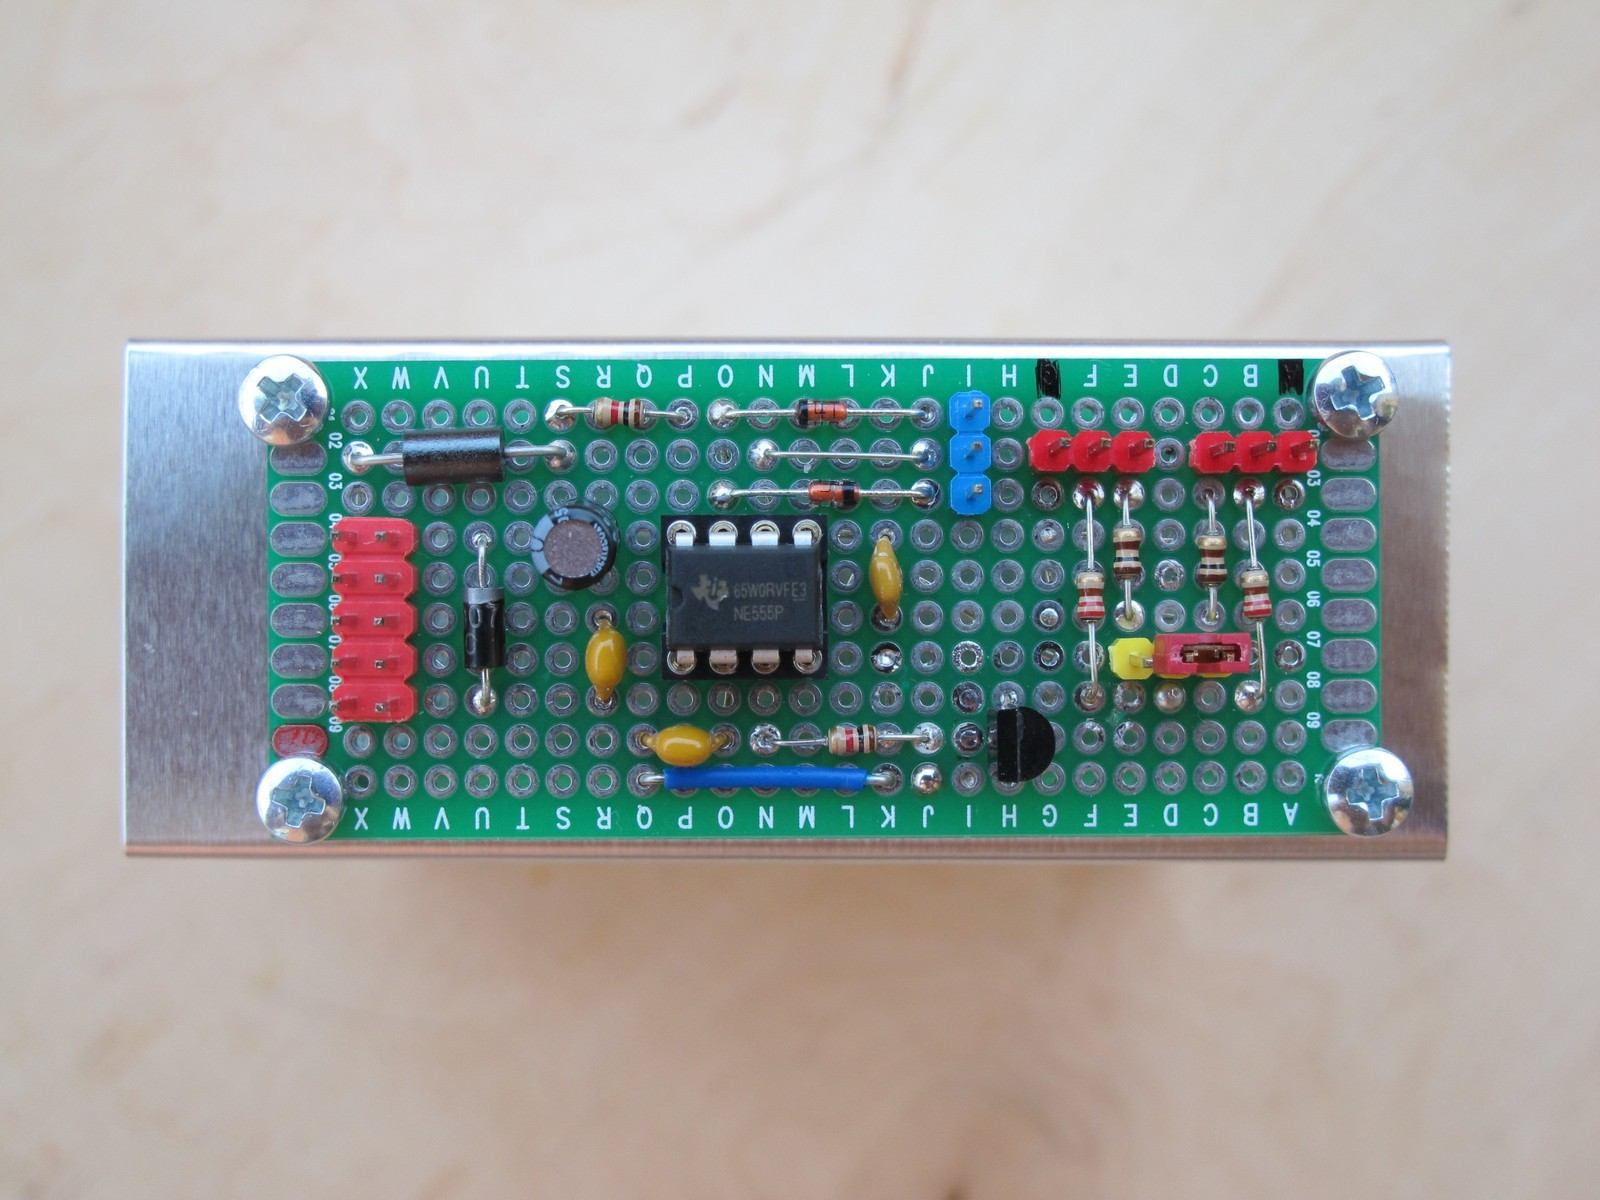 PWM LED controller soldered on universal board